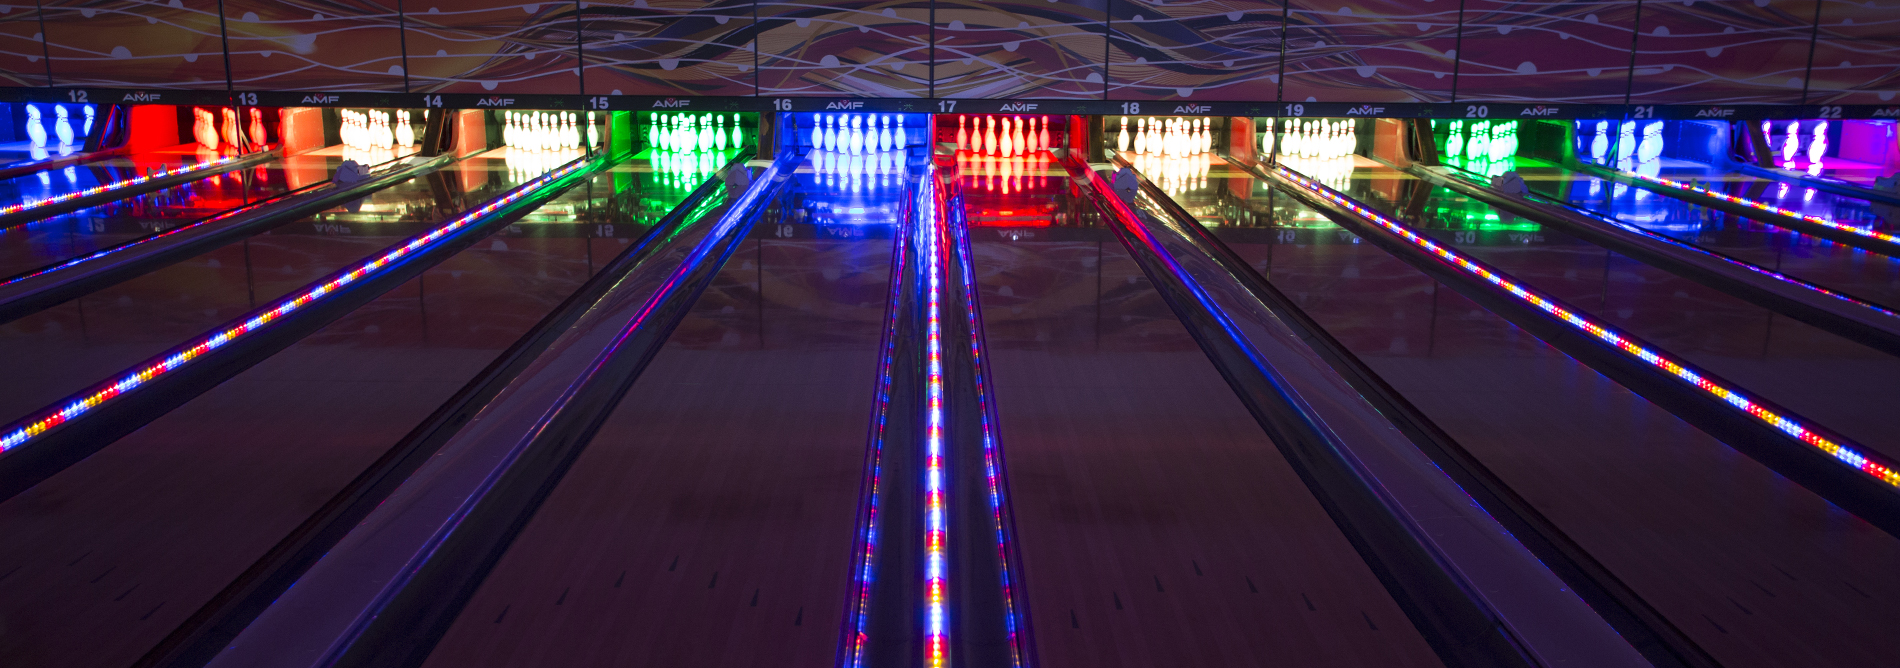 Bowling-QubicaAMF-LANE-ACCESORIES-upgrade-banner.jpg